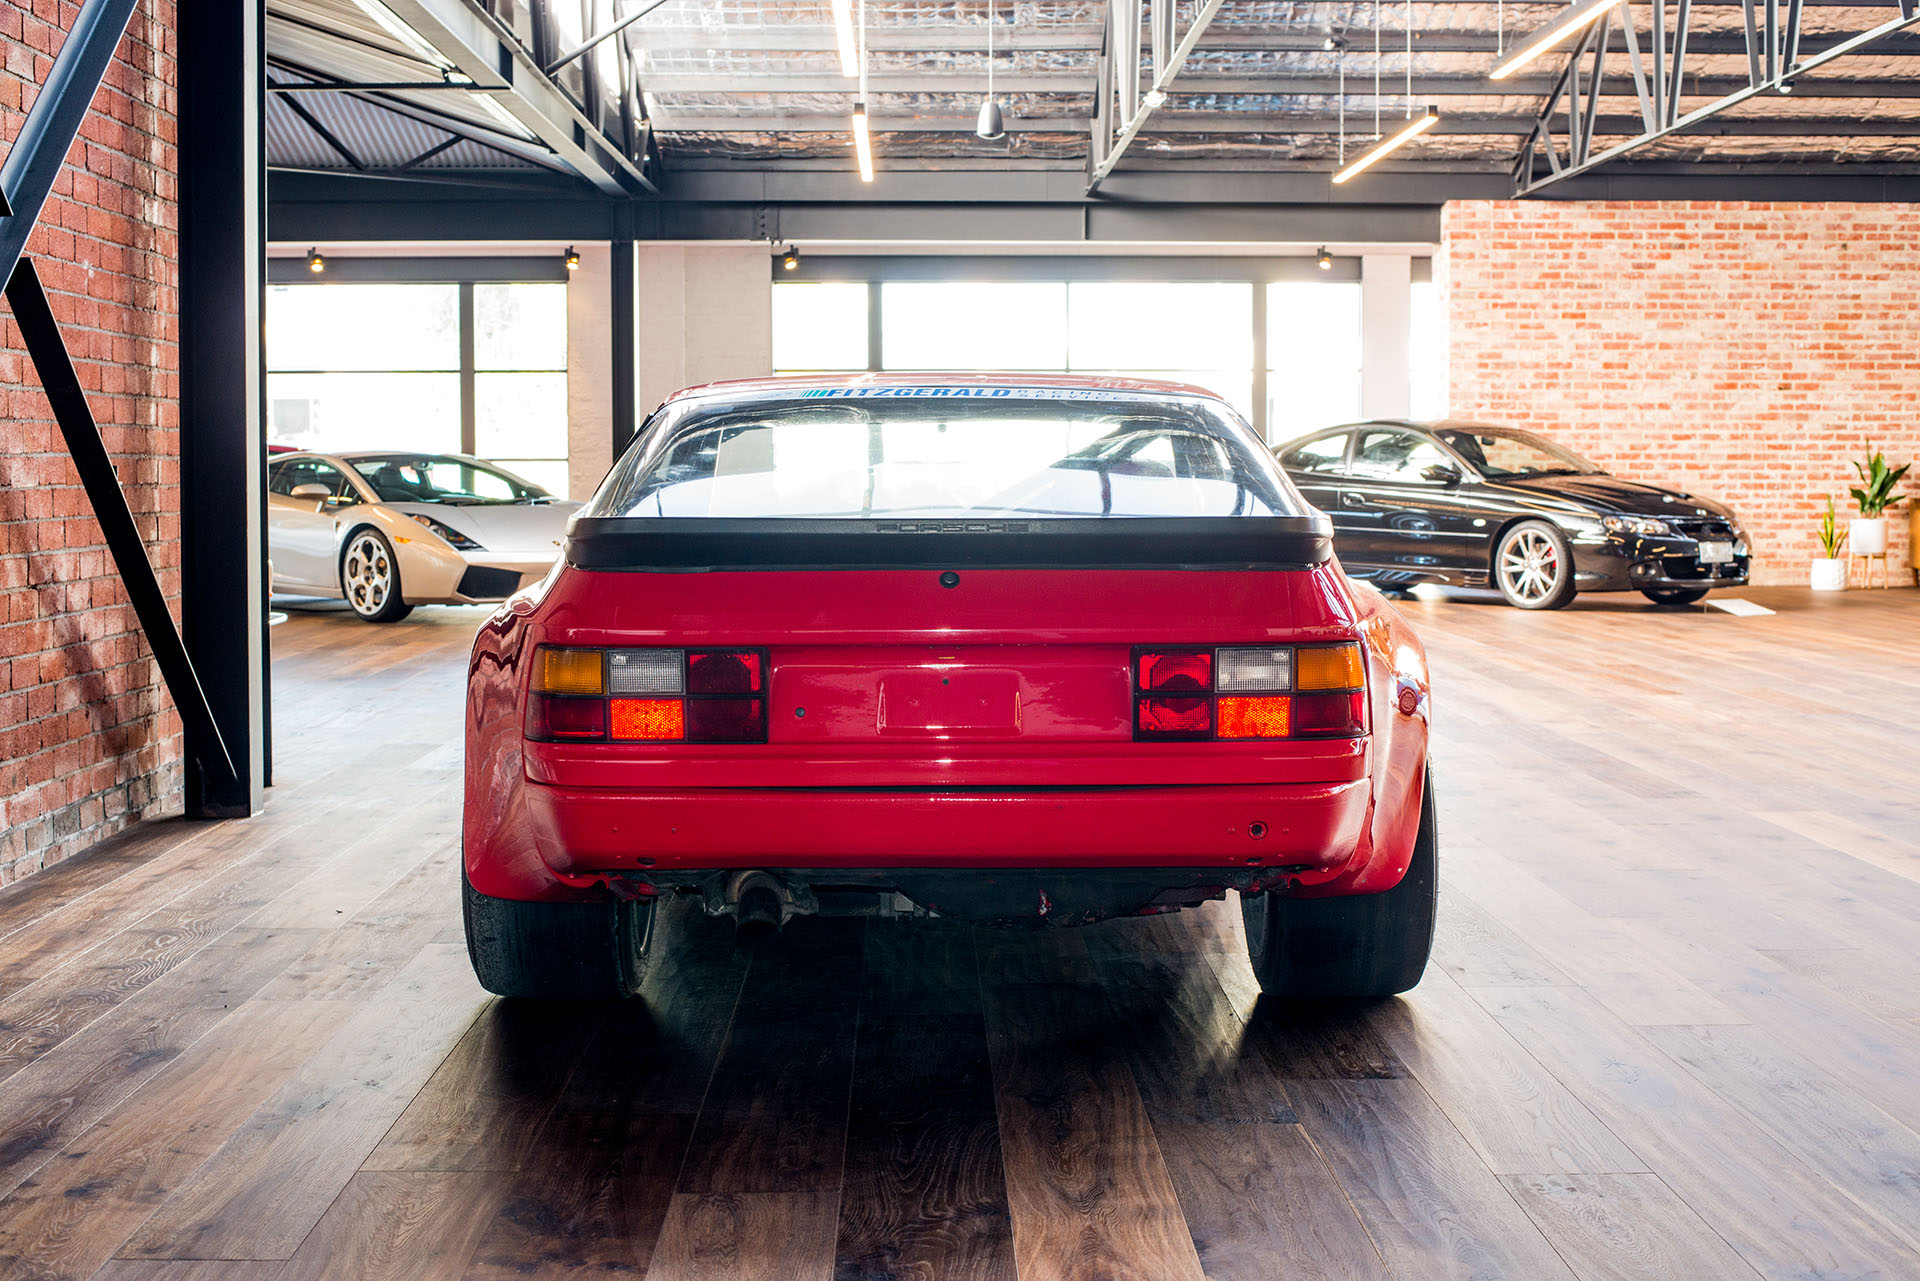 Race Cars For Sale >> 1986 Porsche 944 Turbo - Richmonds - Classic and Prestige Cars - Storage and Sales - Adelaide ...